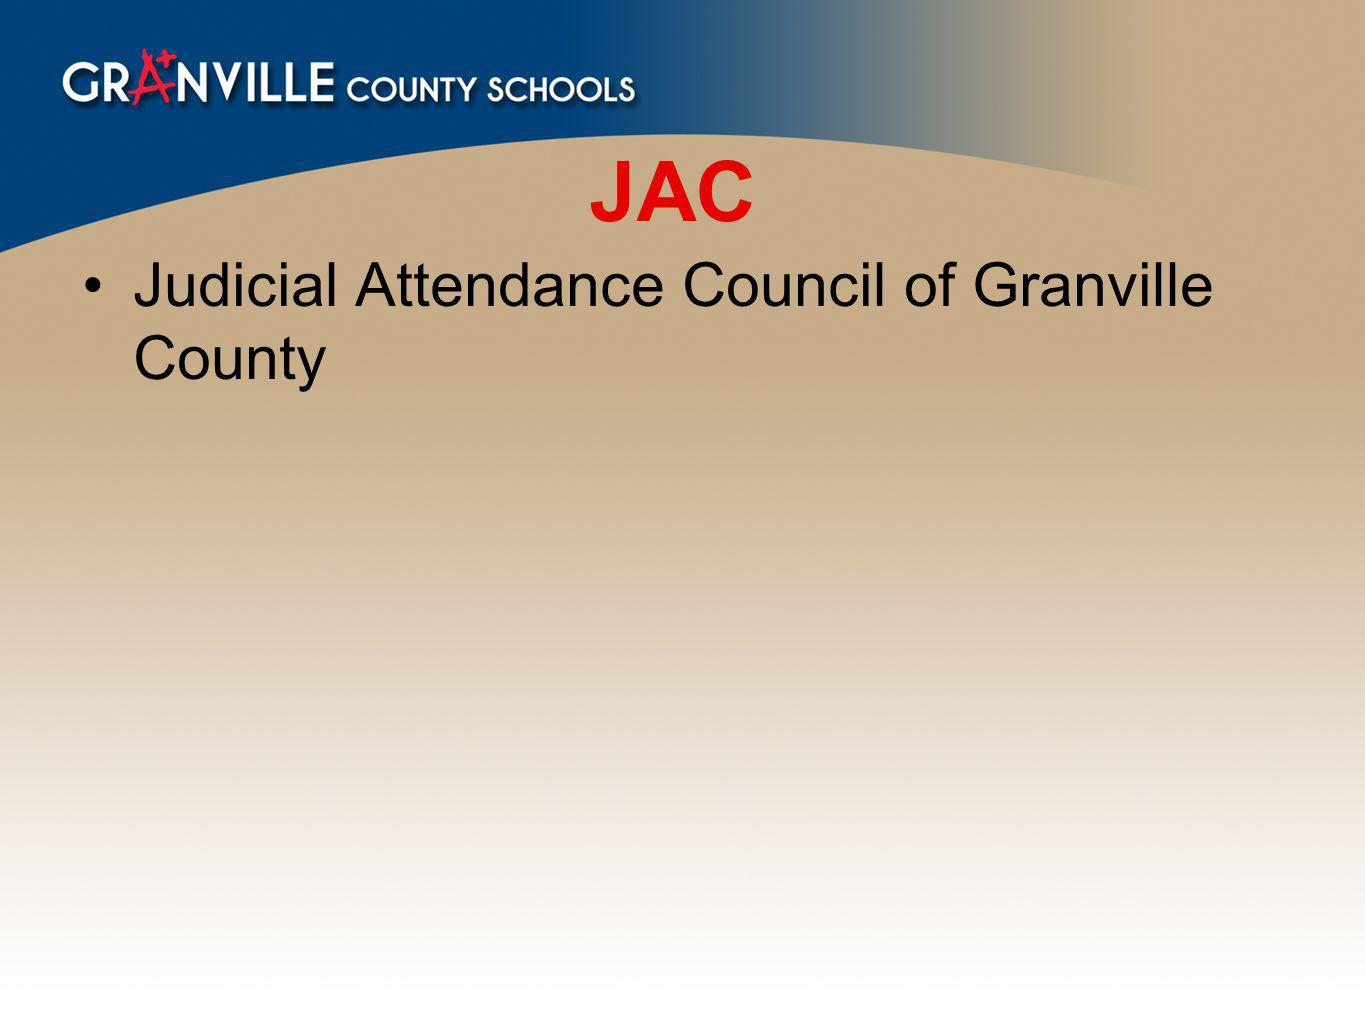 JAC Judicial Attendance Council of Granville County